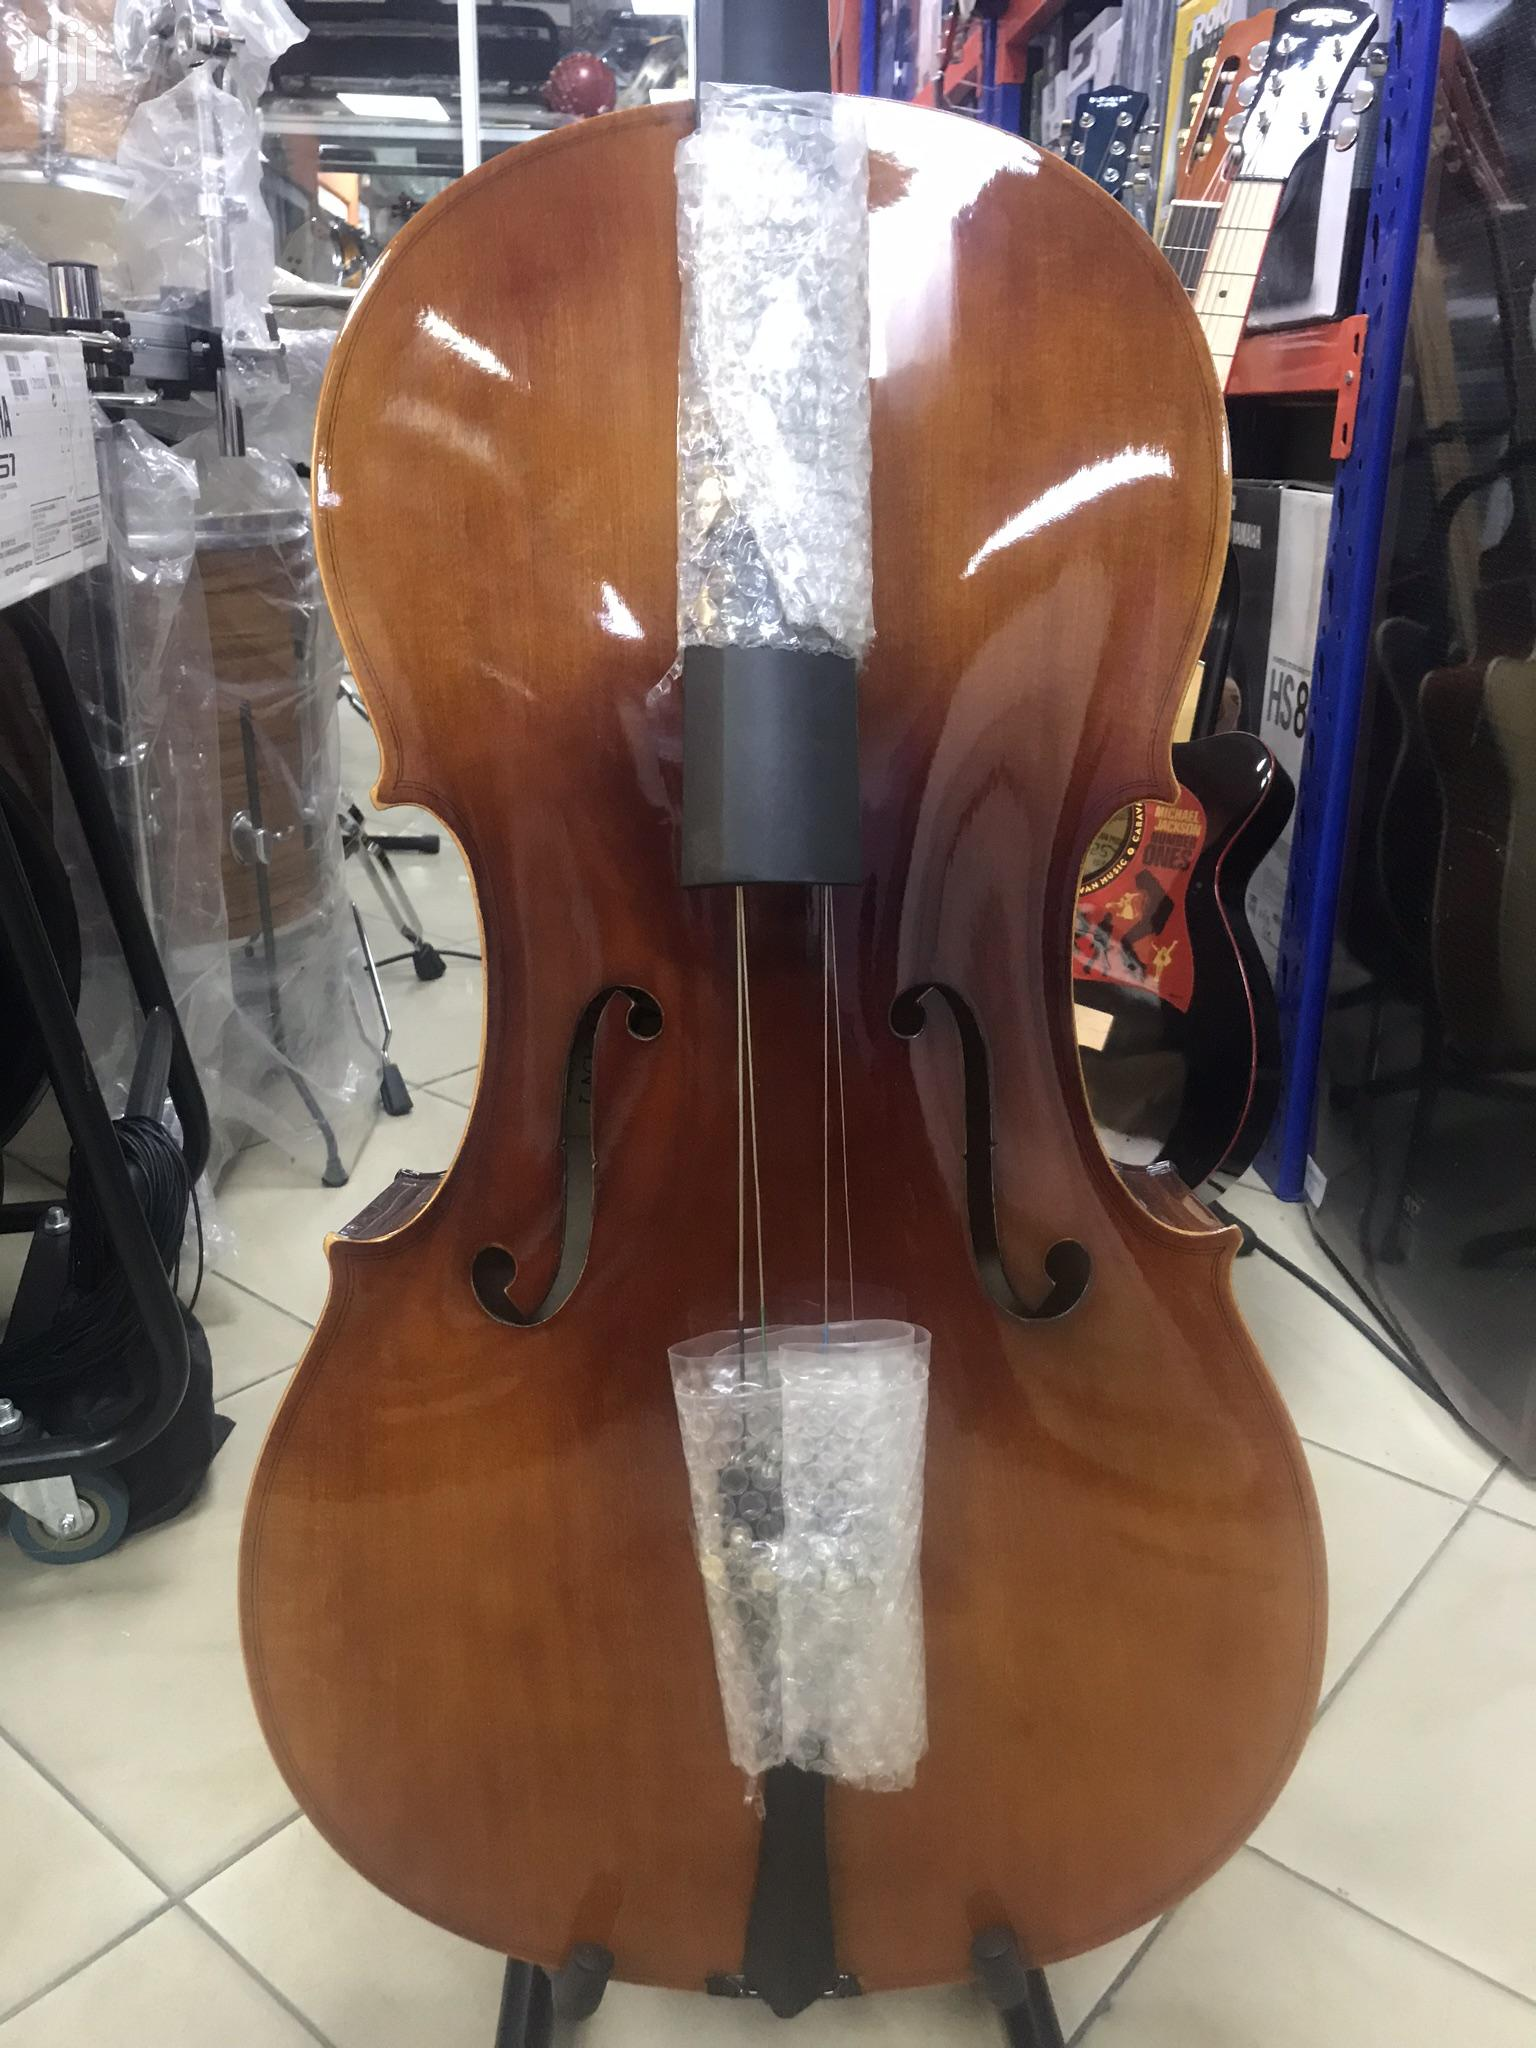 Gallant Professional Concert Cello With Bag